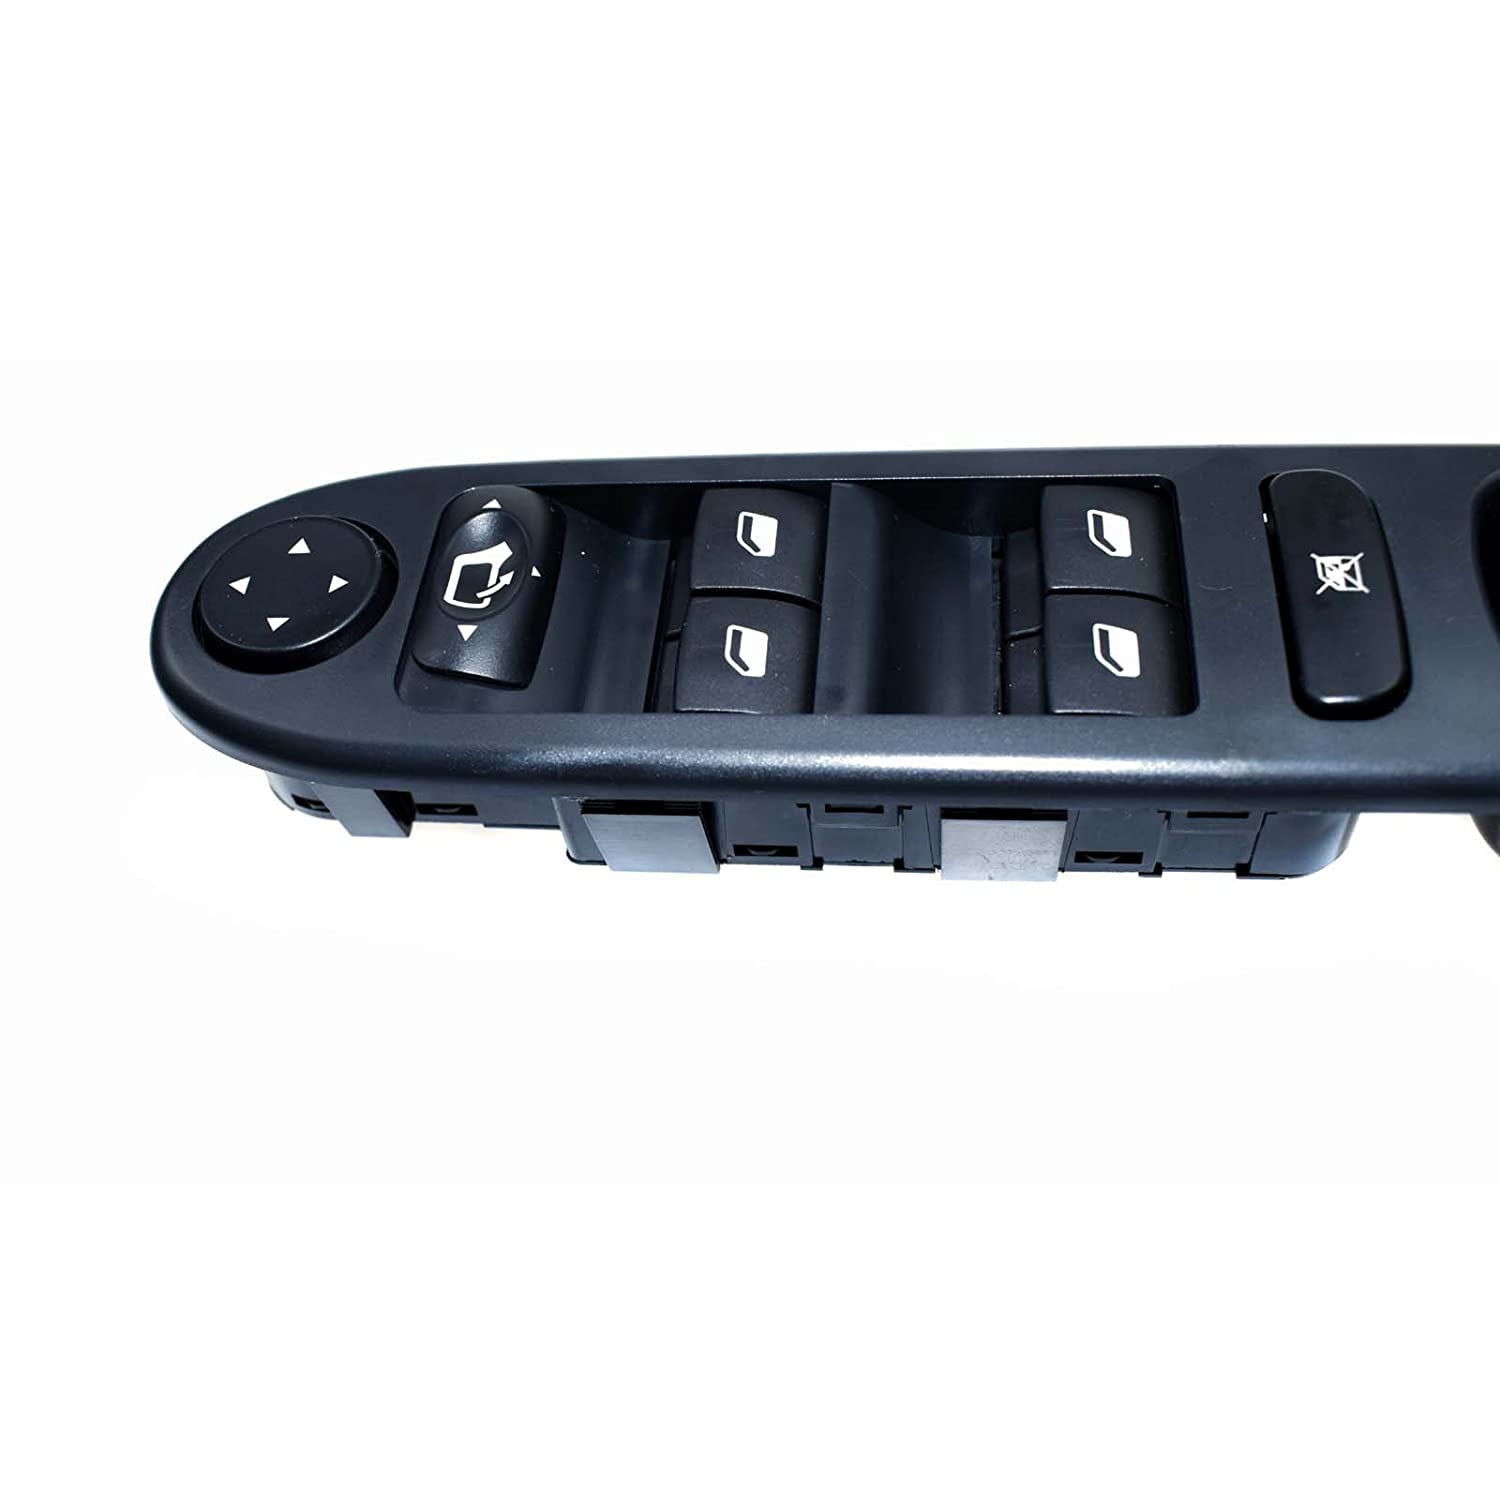 eGang Auto Front Driver Side Master Power Window Switch Control 6554.KT 6554KT For Peugeots 307 SW CC 307SW 307CC 2000 2001 2002 2003 2004 2005 2006 2007 2008 2009 2010 2011 2012 2013 2014 New